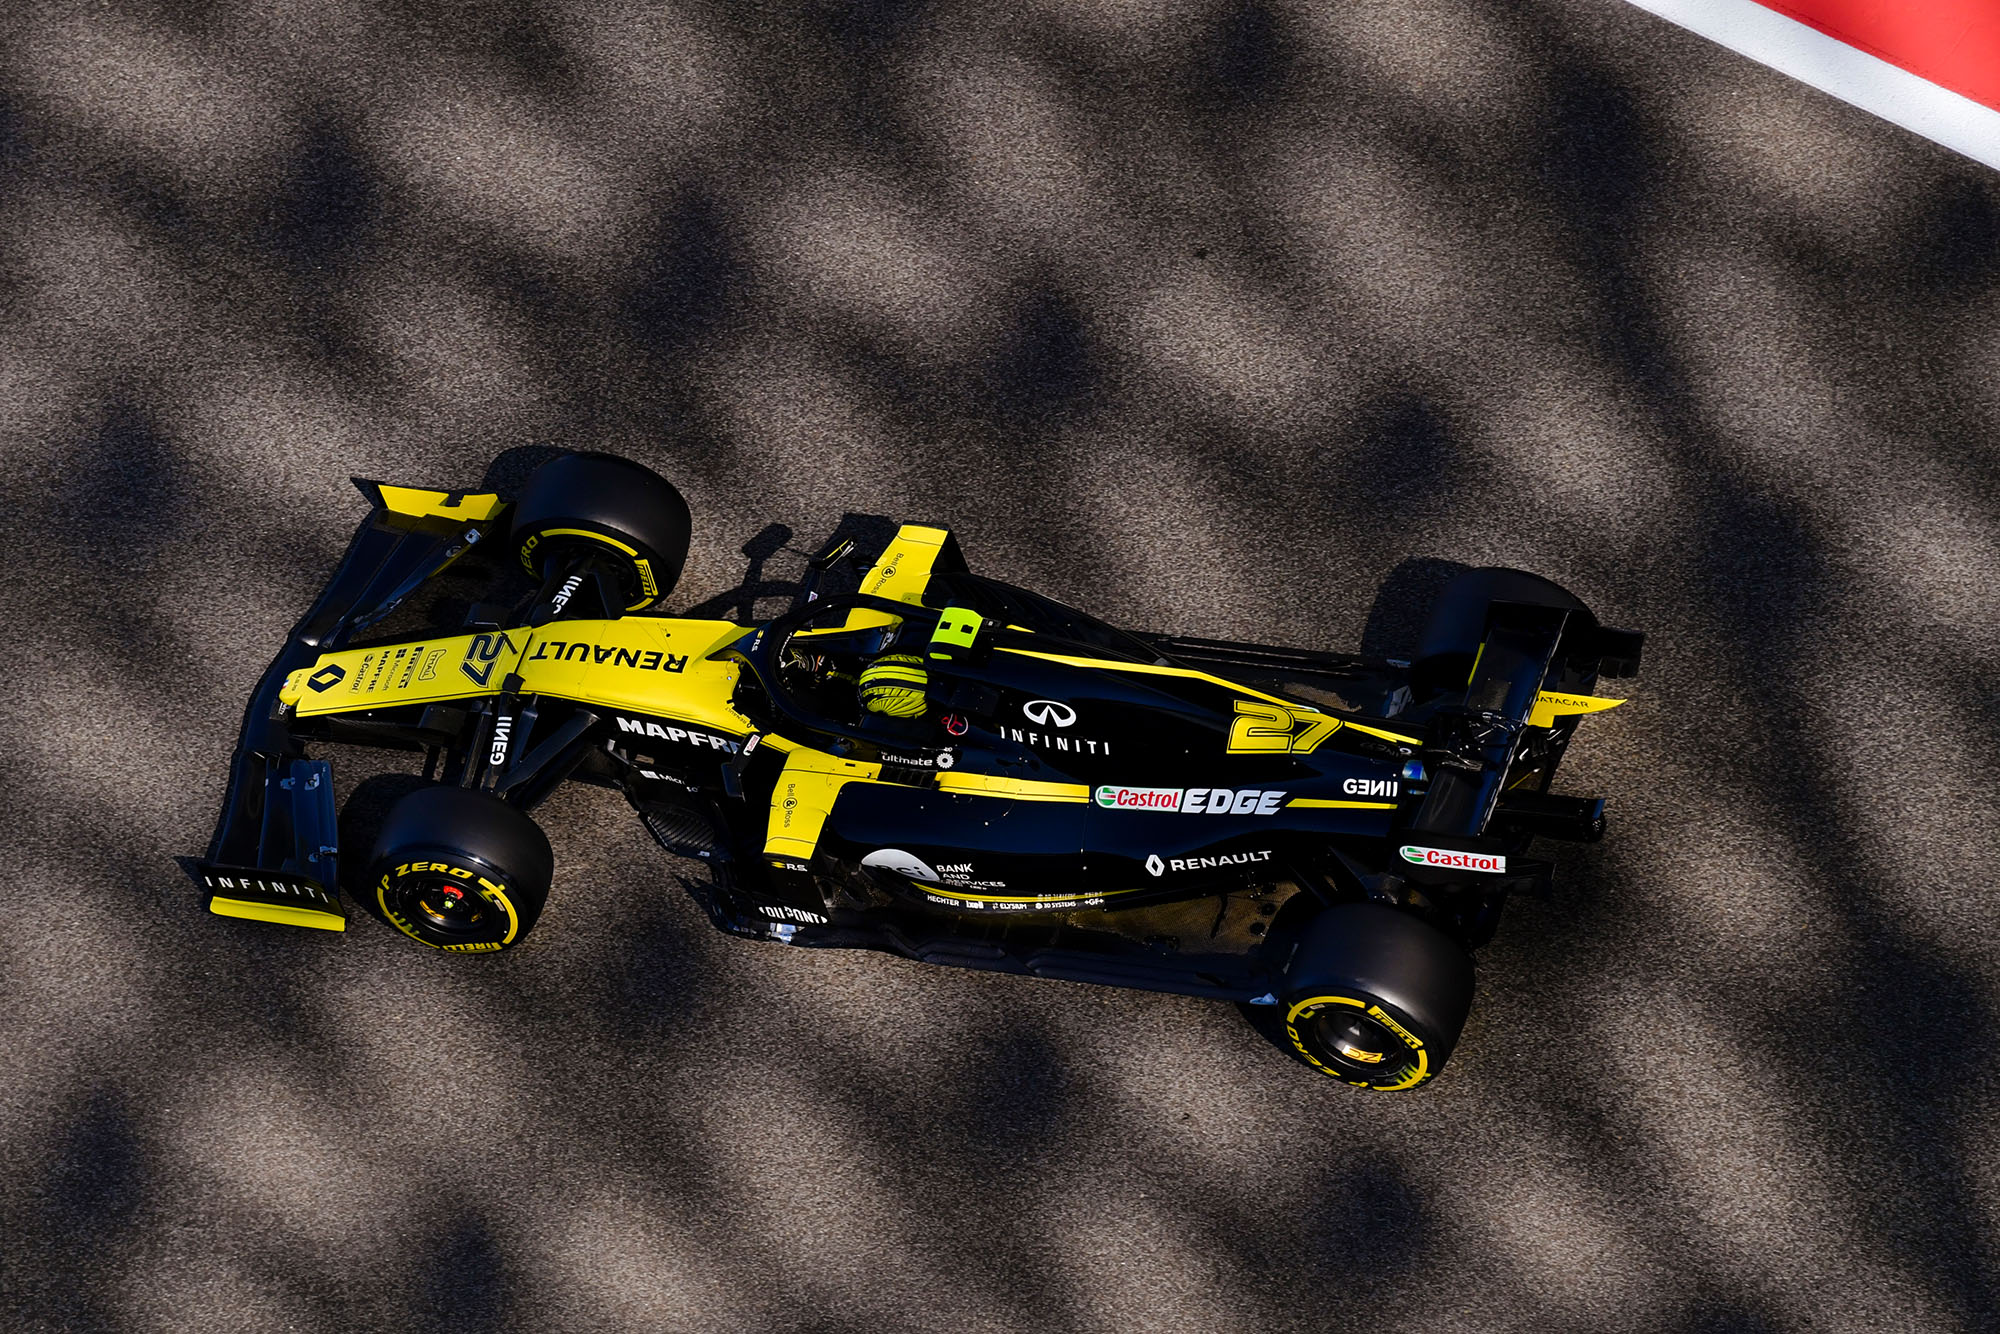 Overhead shot of the Renault RS 19 at the 2019 f1 Abu Dhabi Grand Prix